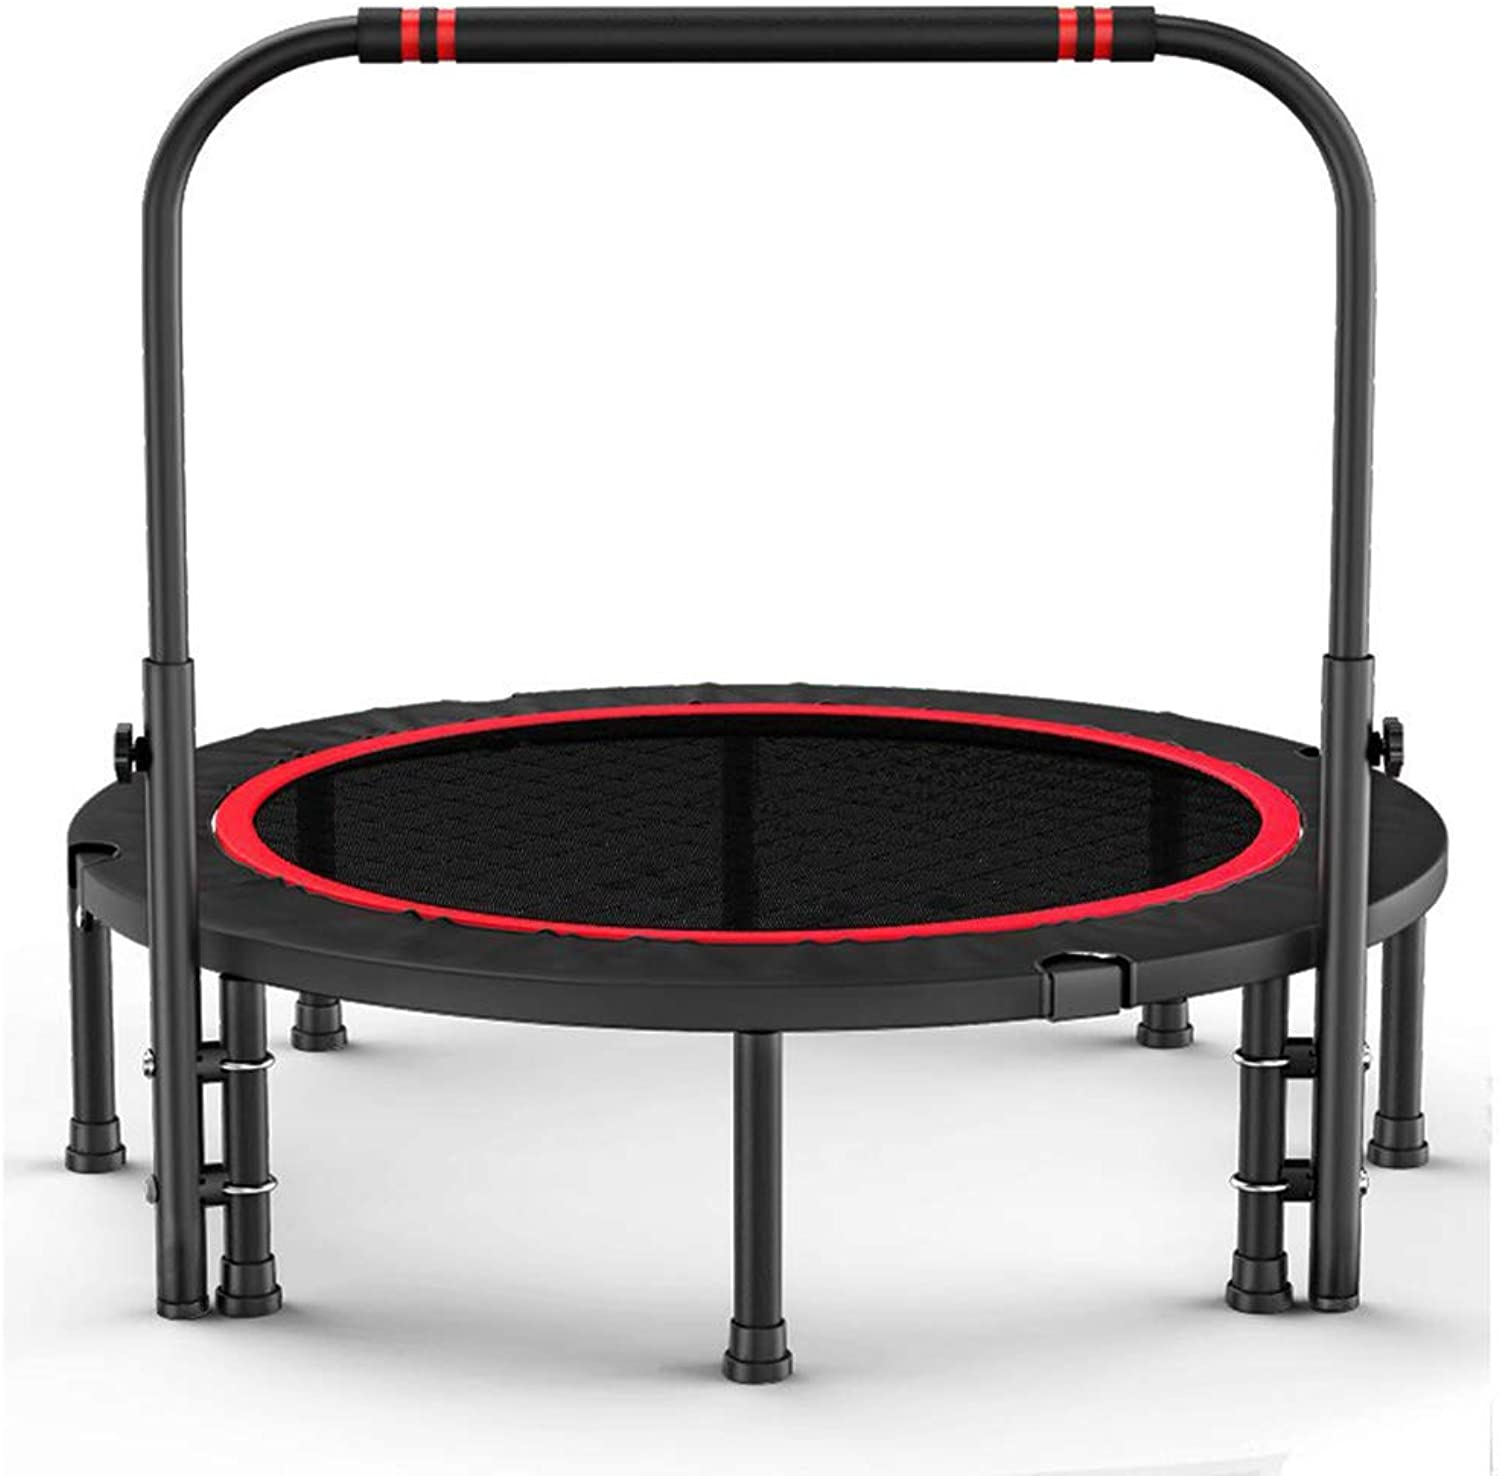 Mini Trampoline, UShaped Handle Folding Fitness Trampoline, Aerobics Bouncing Bed Heavy Spring Jump mat, 40in 48in 50in Reinforced Base